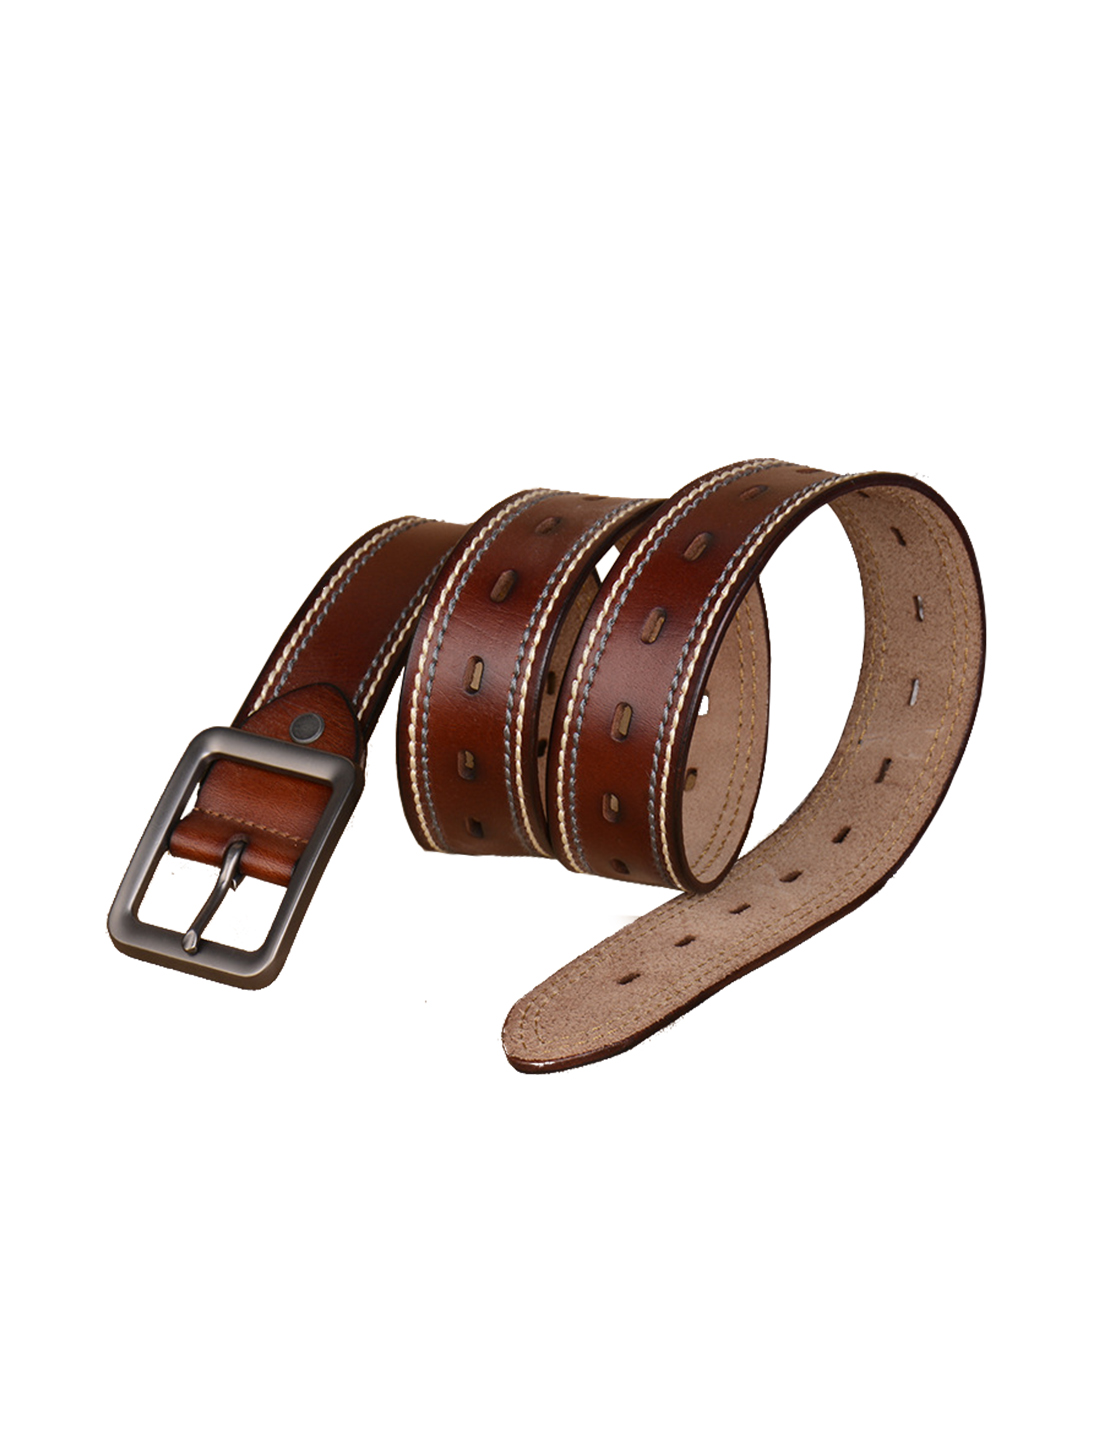 Men Modern Stitching Single Pin Buckle Leather Belt 39mm Width 1 1/2 Brown 120cm